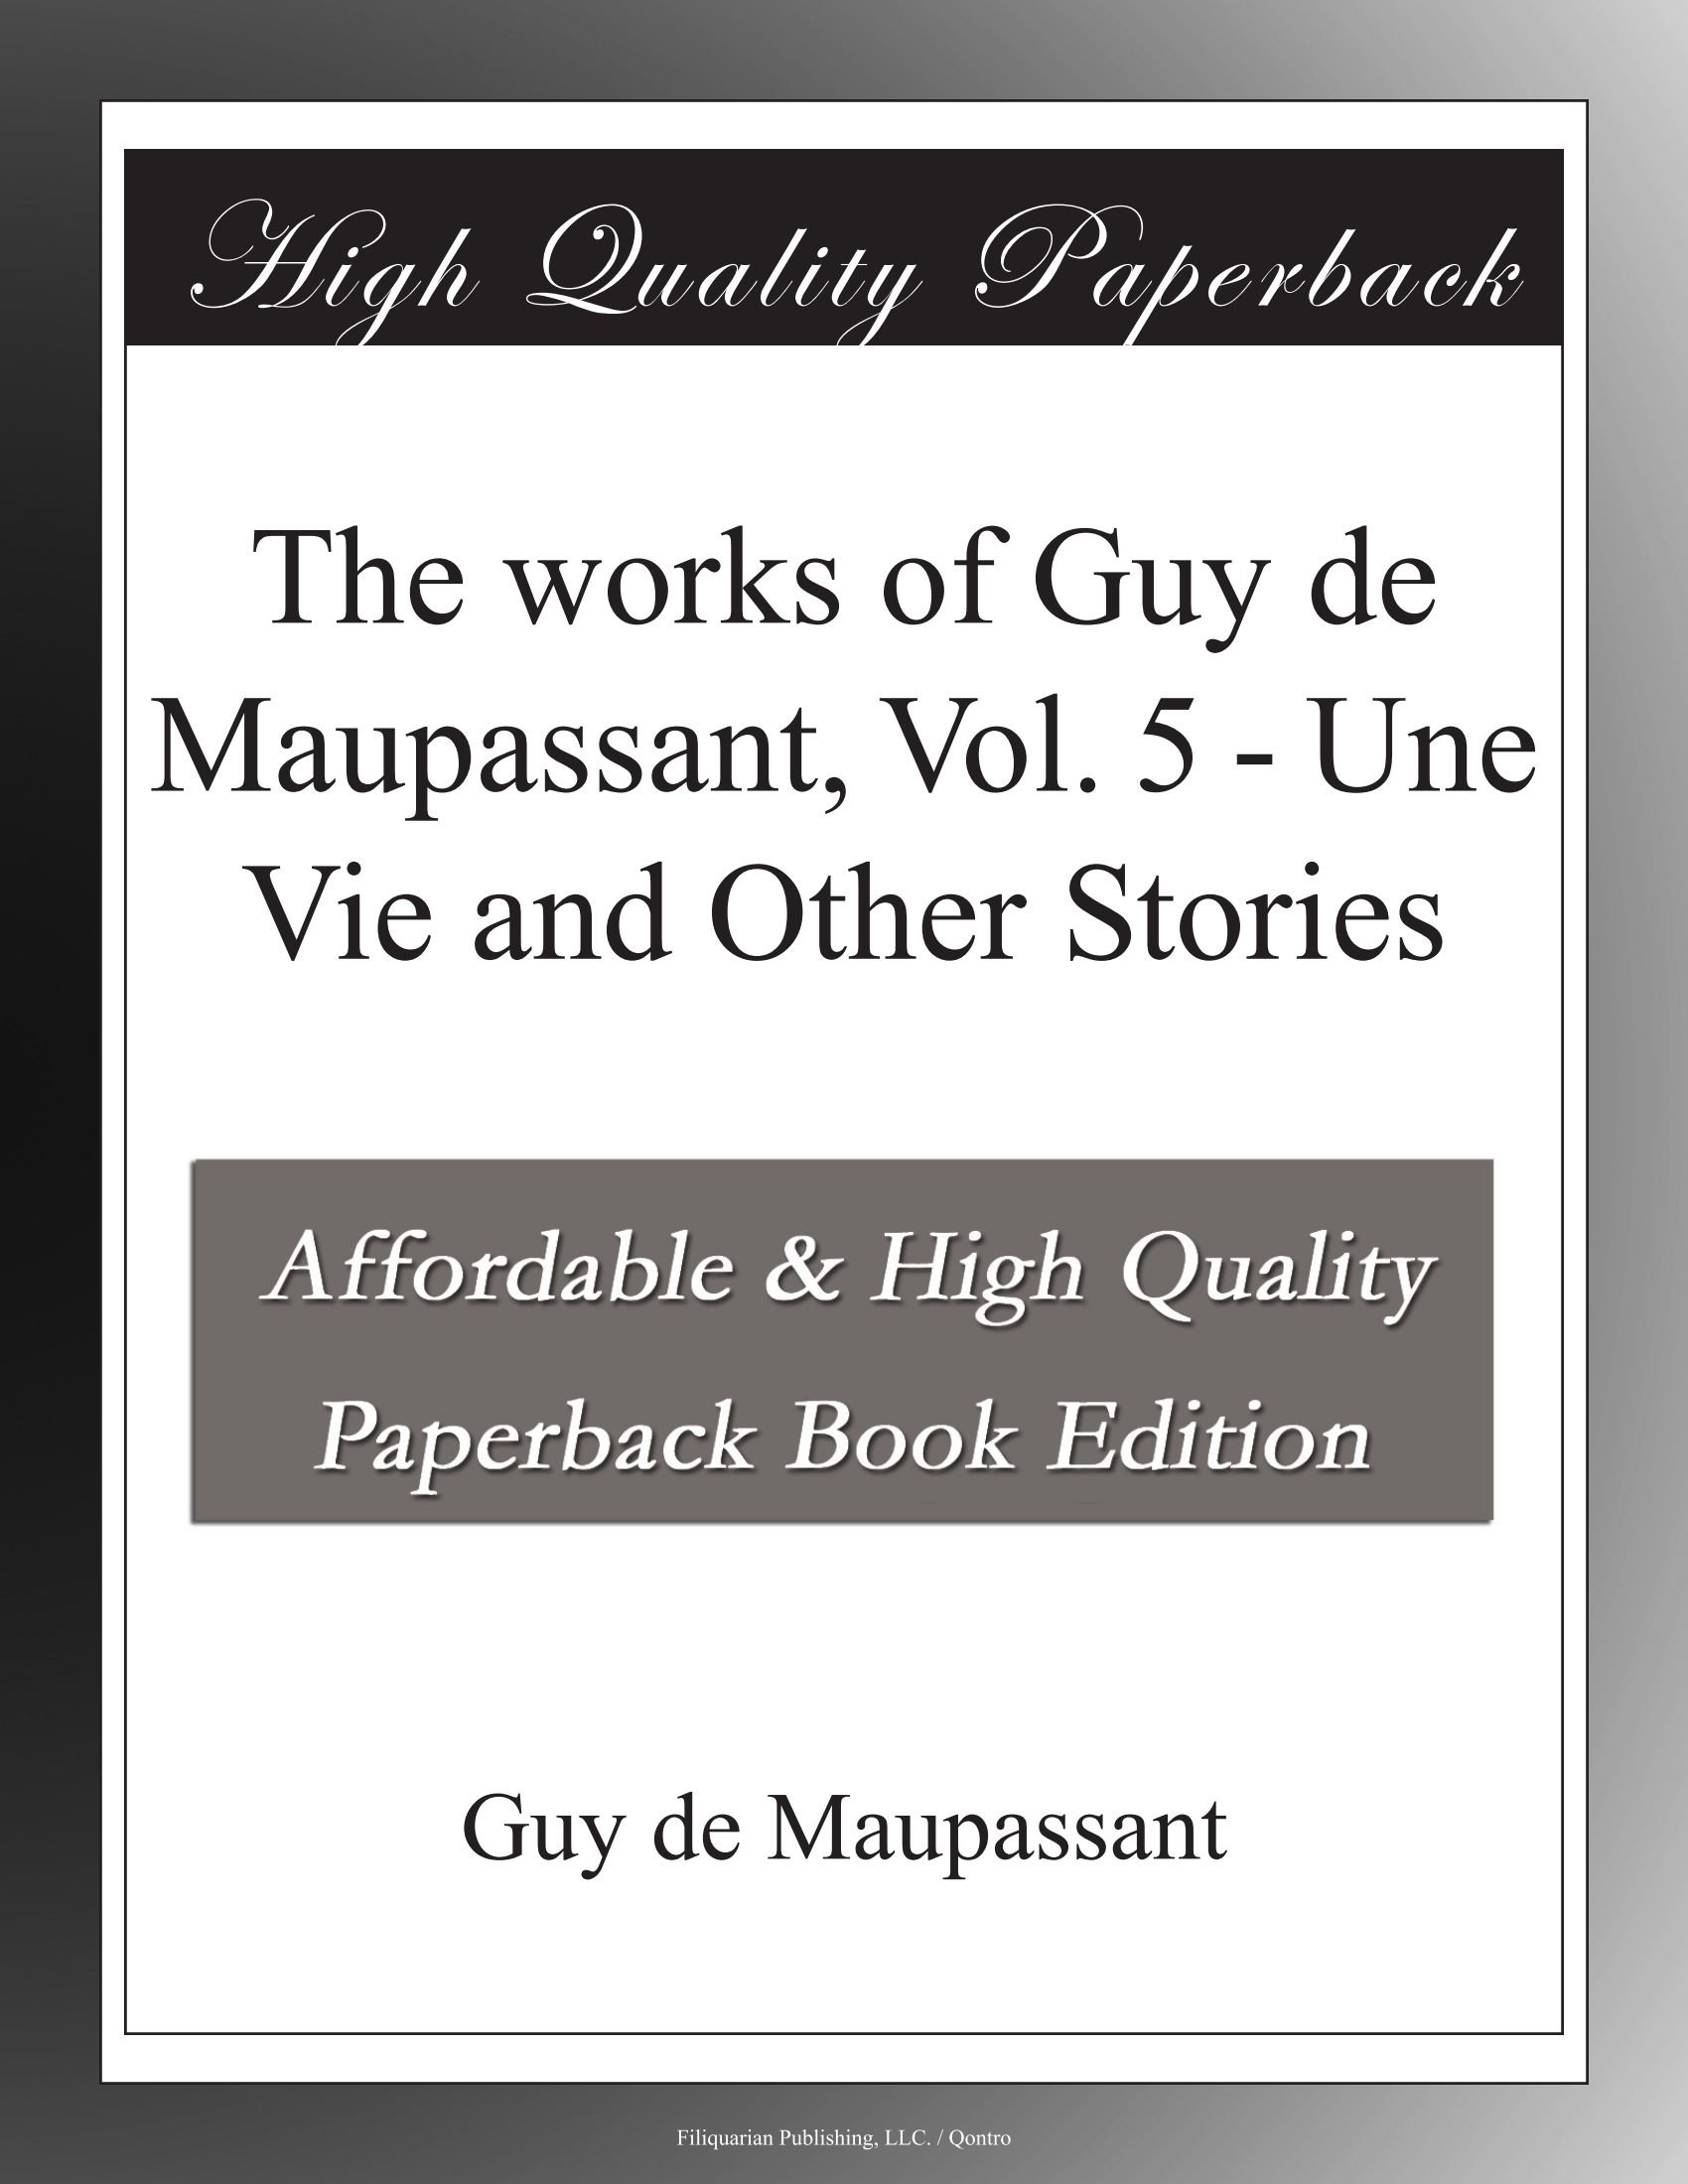 The works of Guy de Maupassant, Vol. 5 - Une Vie and Other Stories ebook